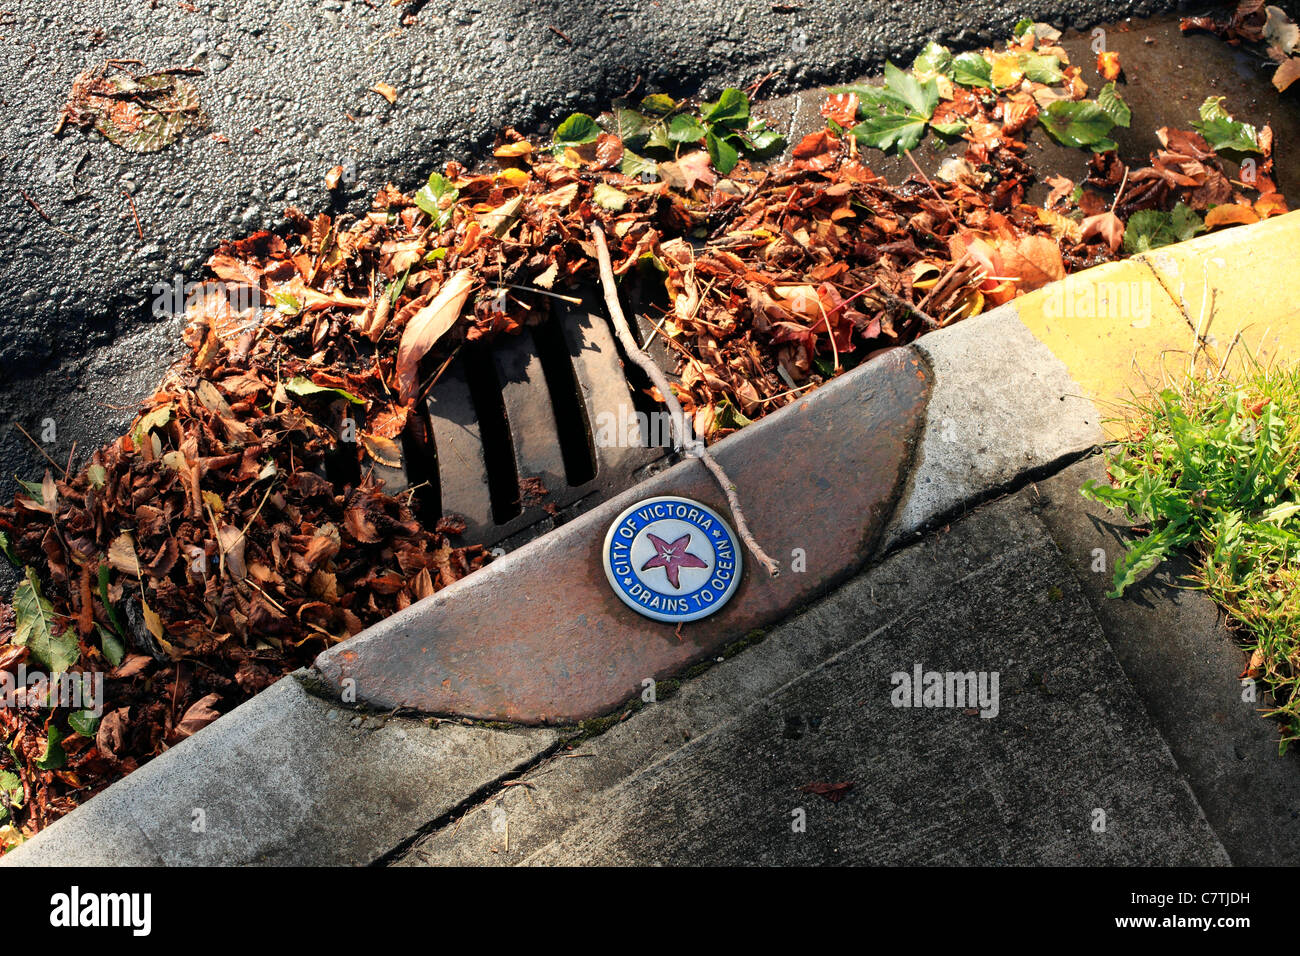 Drains to the ocean - Stock Image